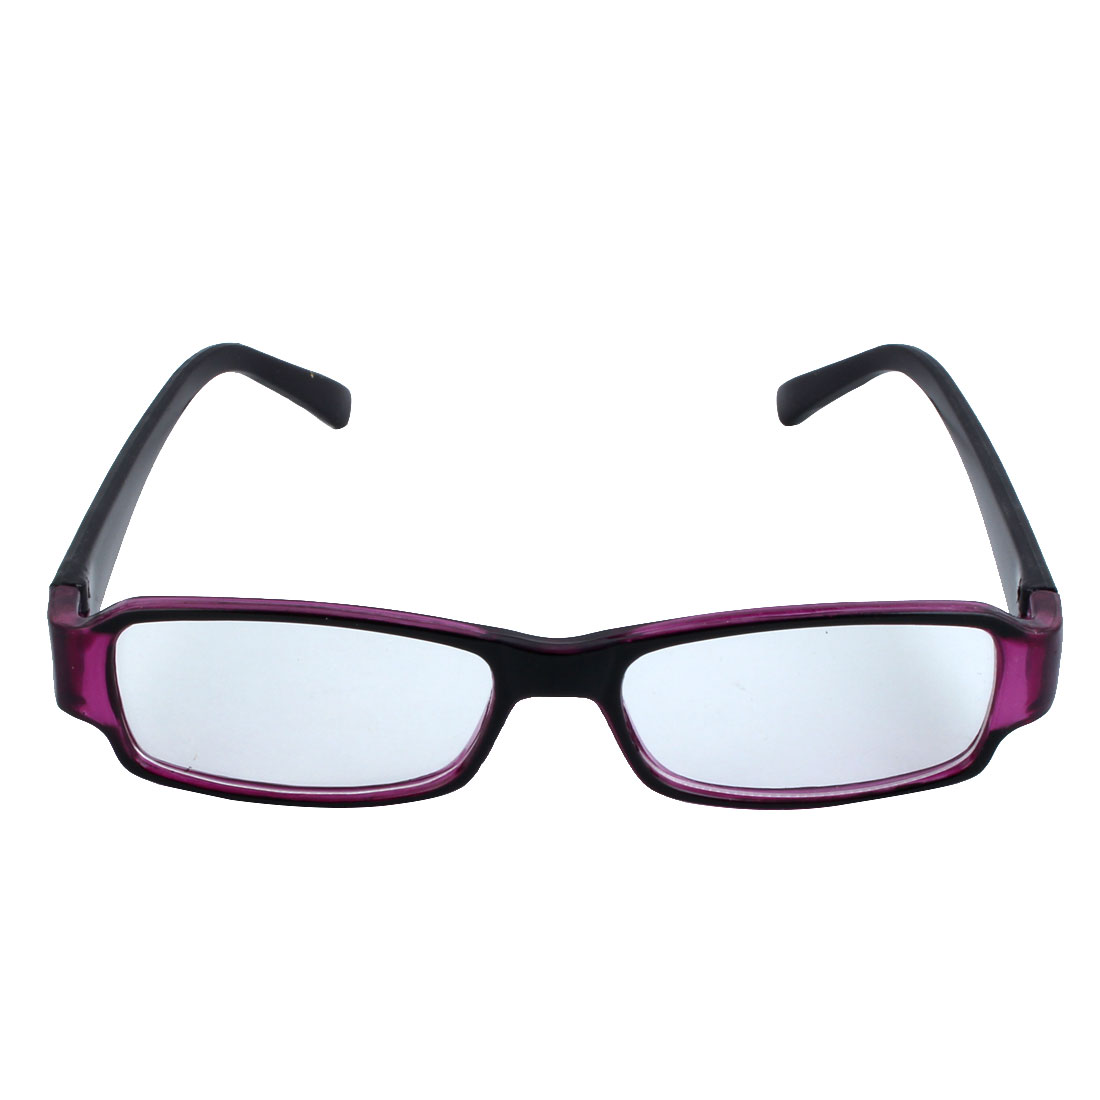 Ladies Black Purple Rectangular Frame Plastic Arms Plain Glasses